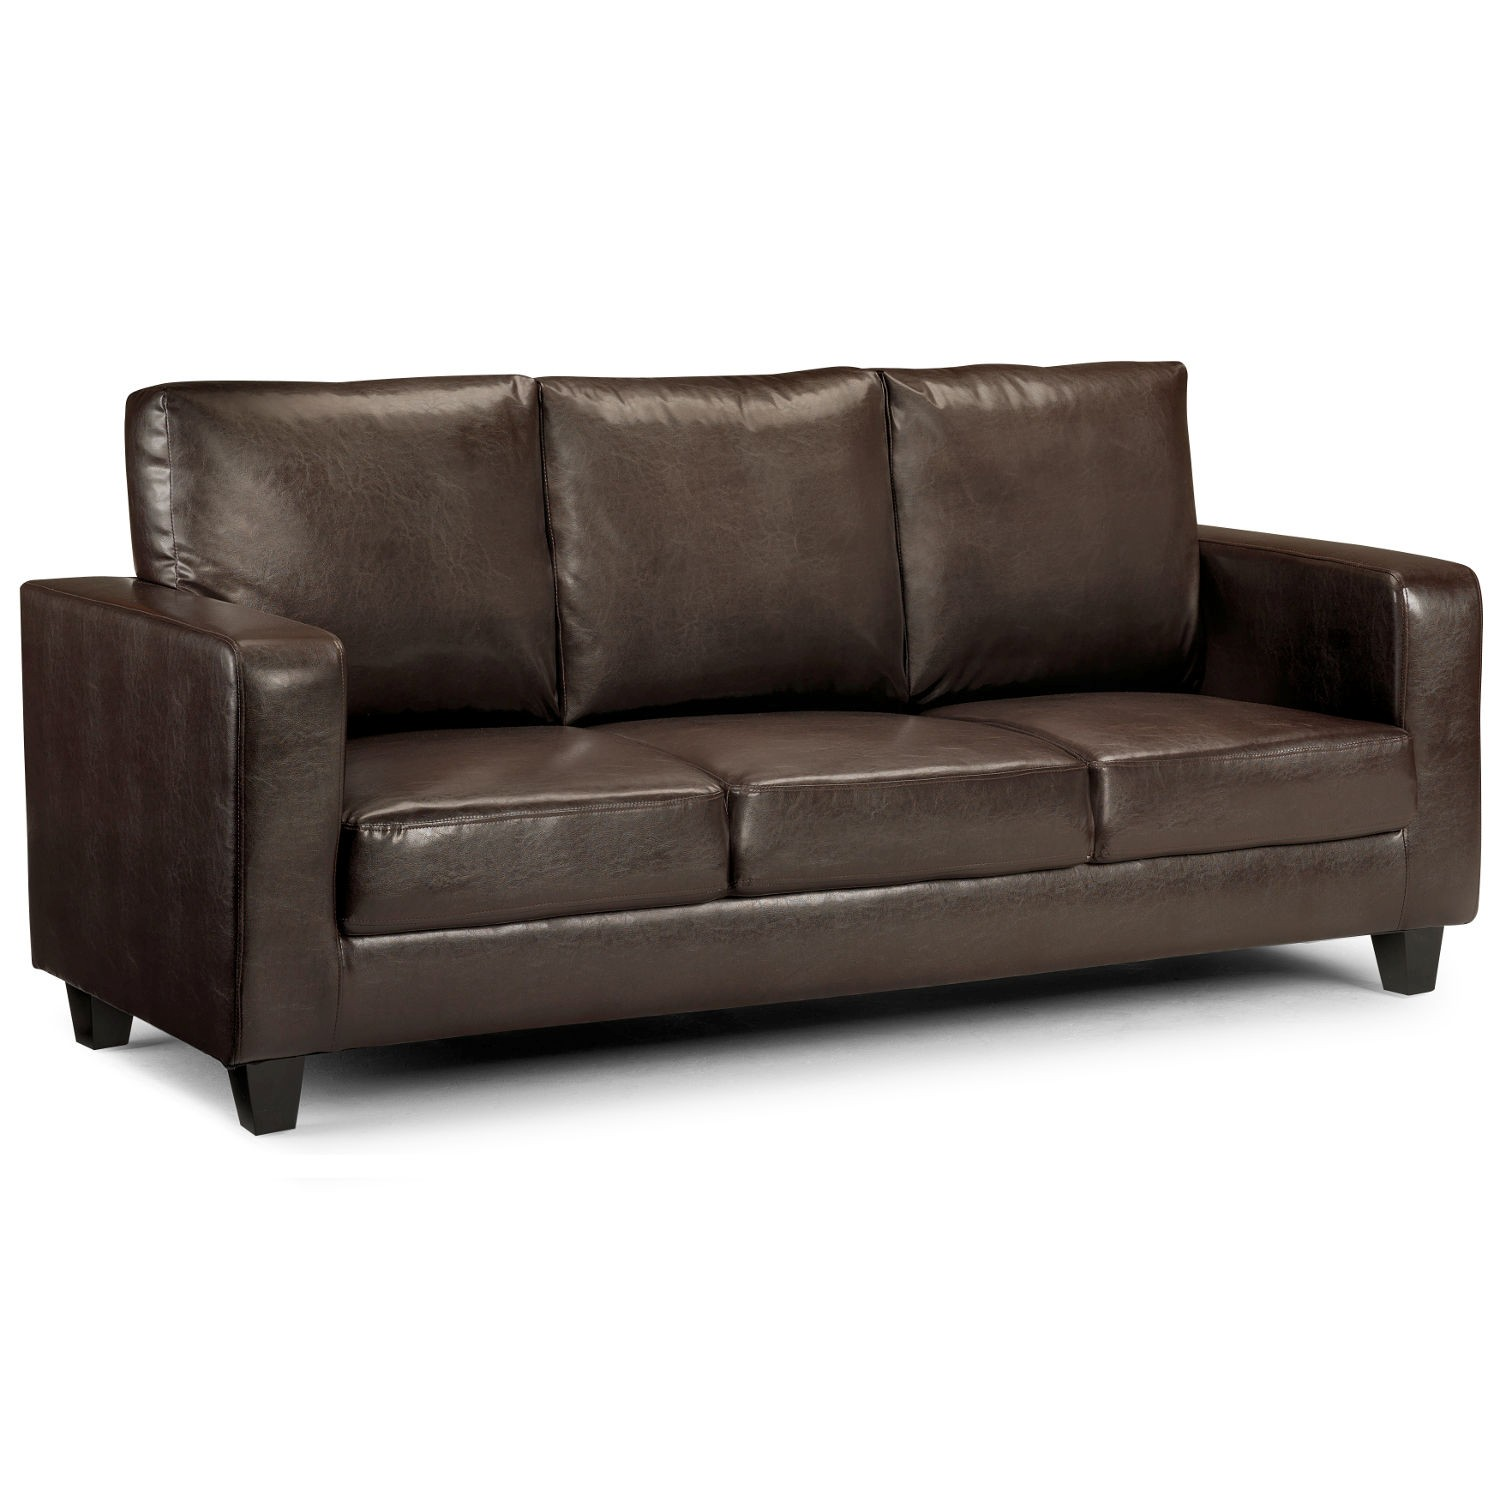 Faux Leather sofa Fascinating Matthew 3 Seater Faux Leather sofa Next Day Delivery Matthew 3 Model